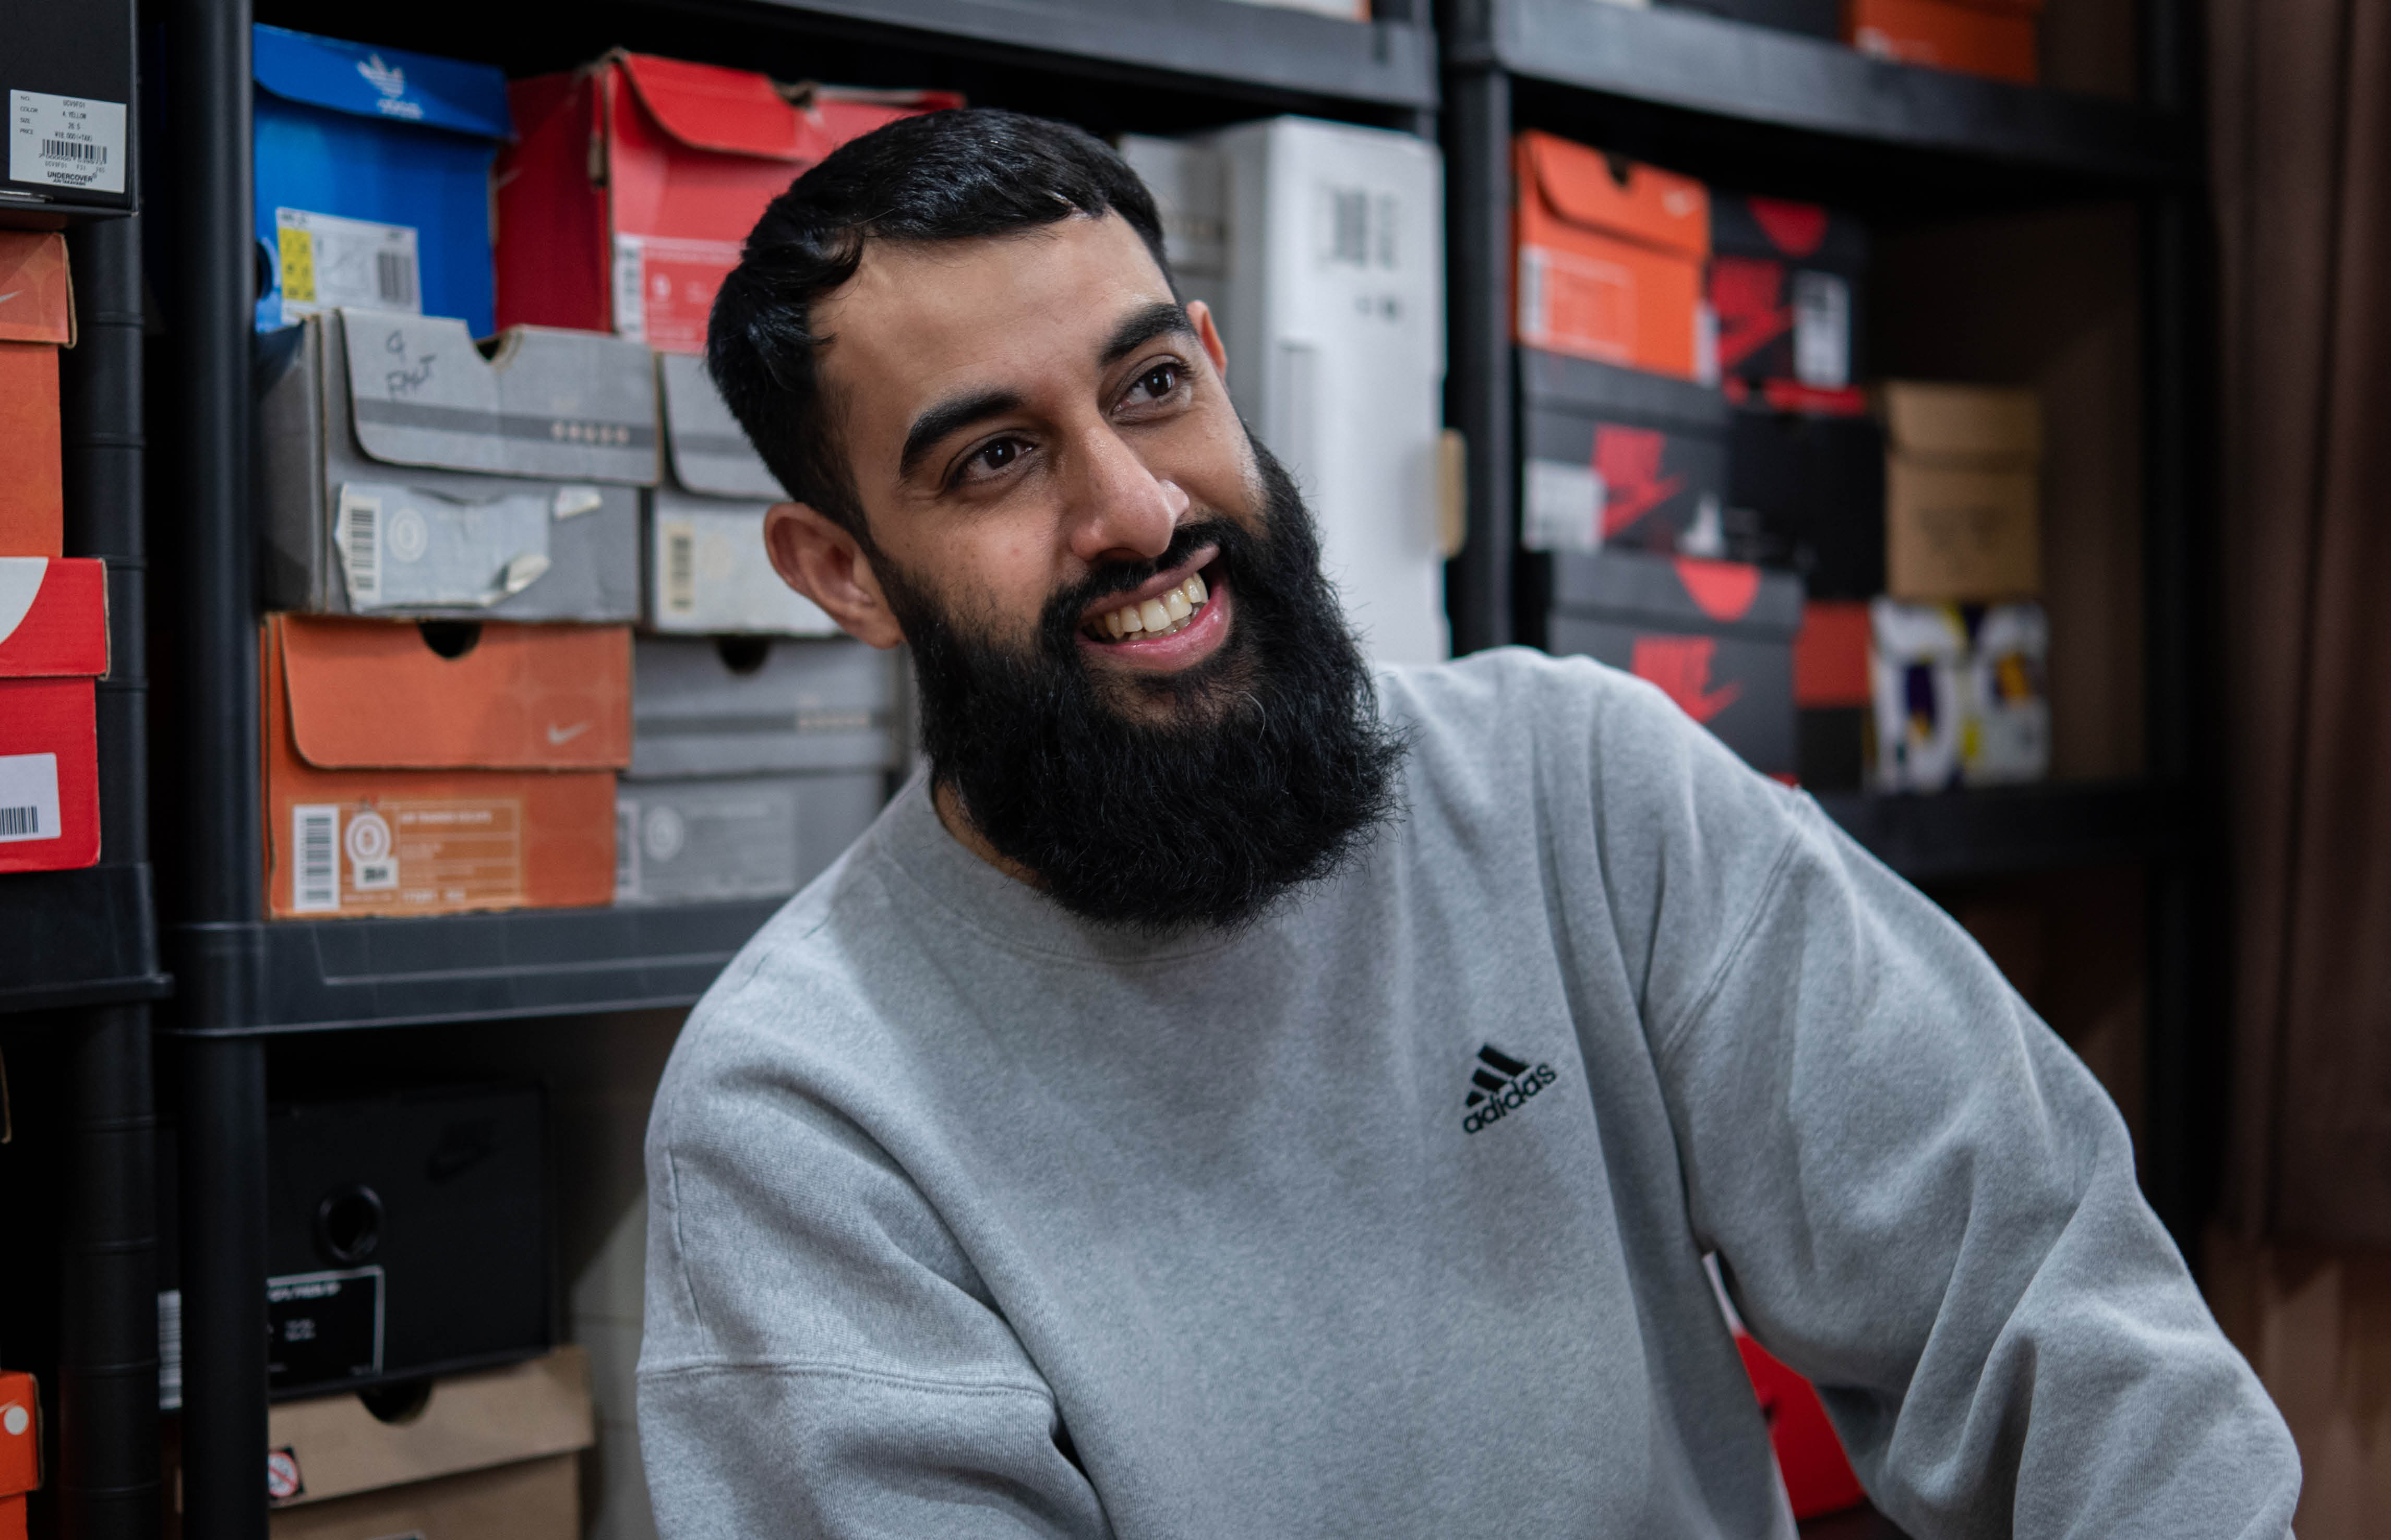 Meet the men who make thousands selling second-hand trainers